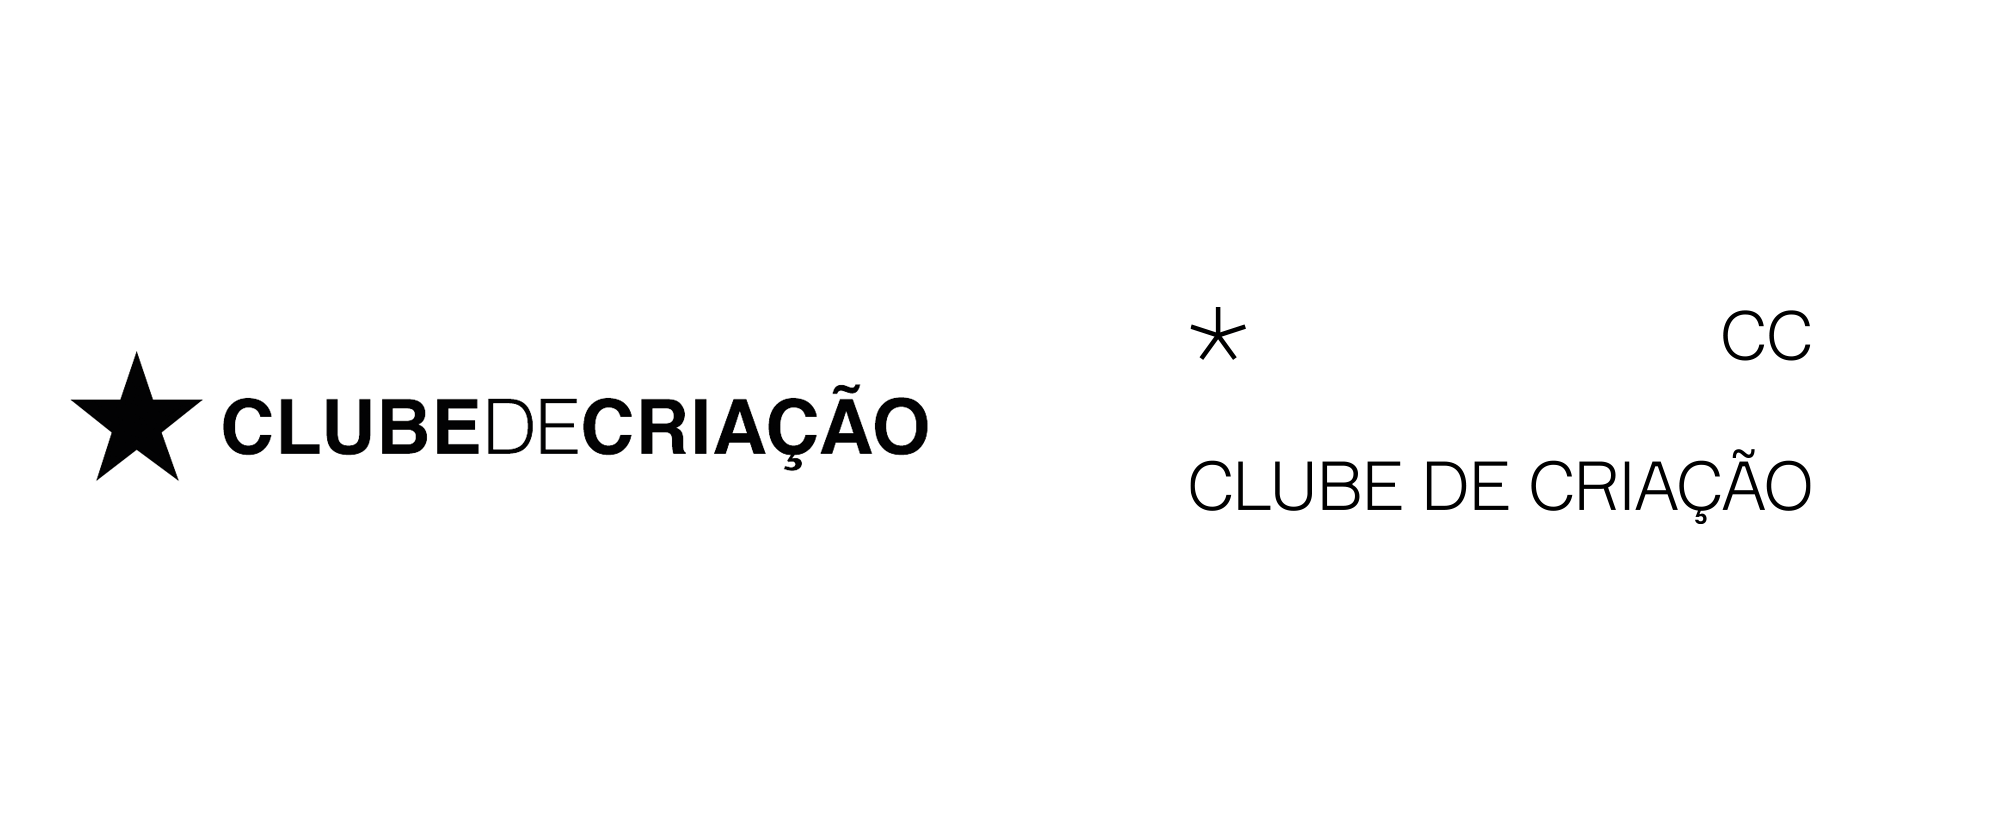 New Logo and Identity for Clube de Criação by Wieden+Kennedy